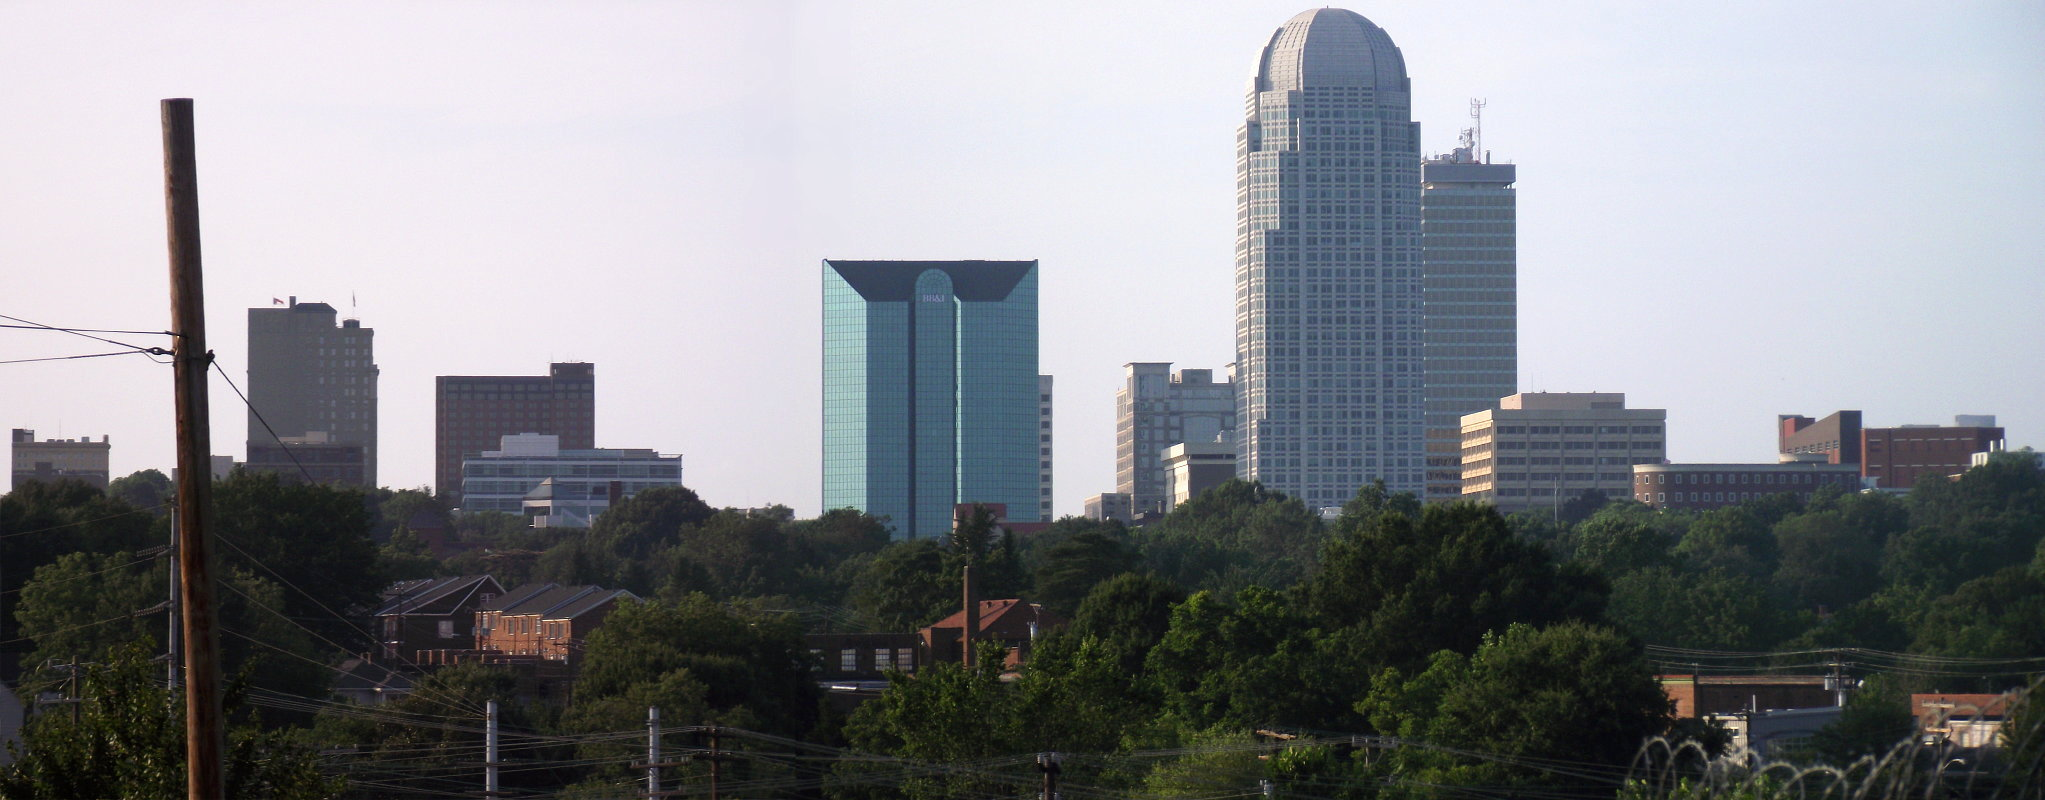 Winston Salem City Skyline